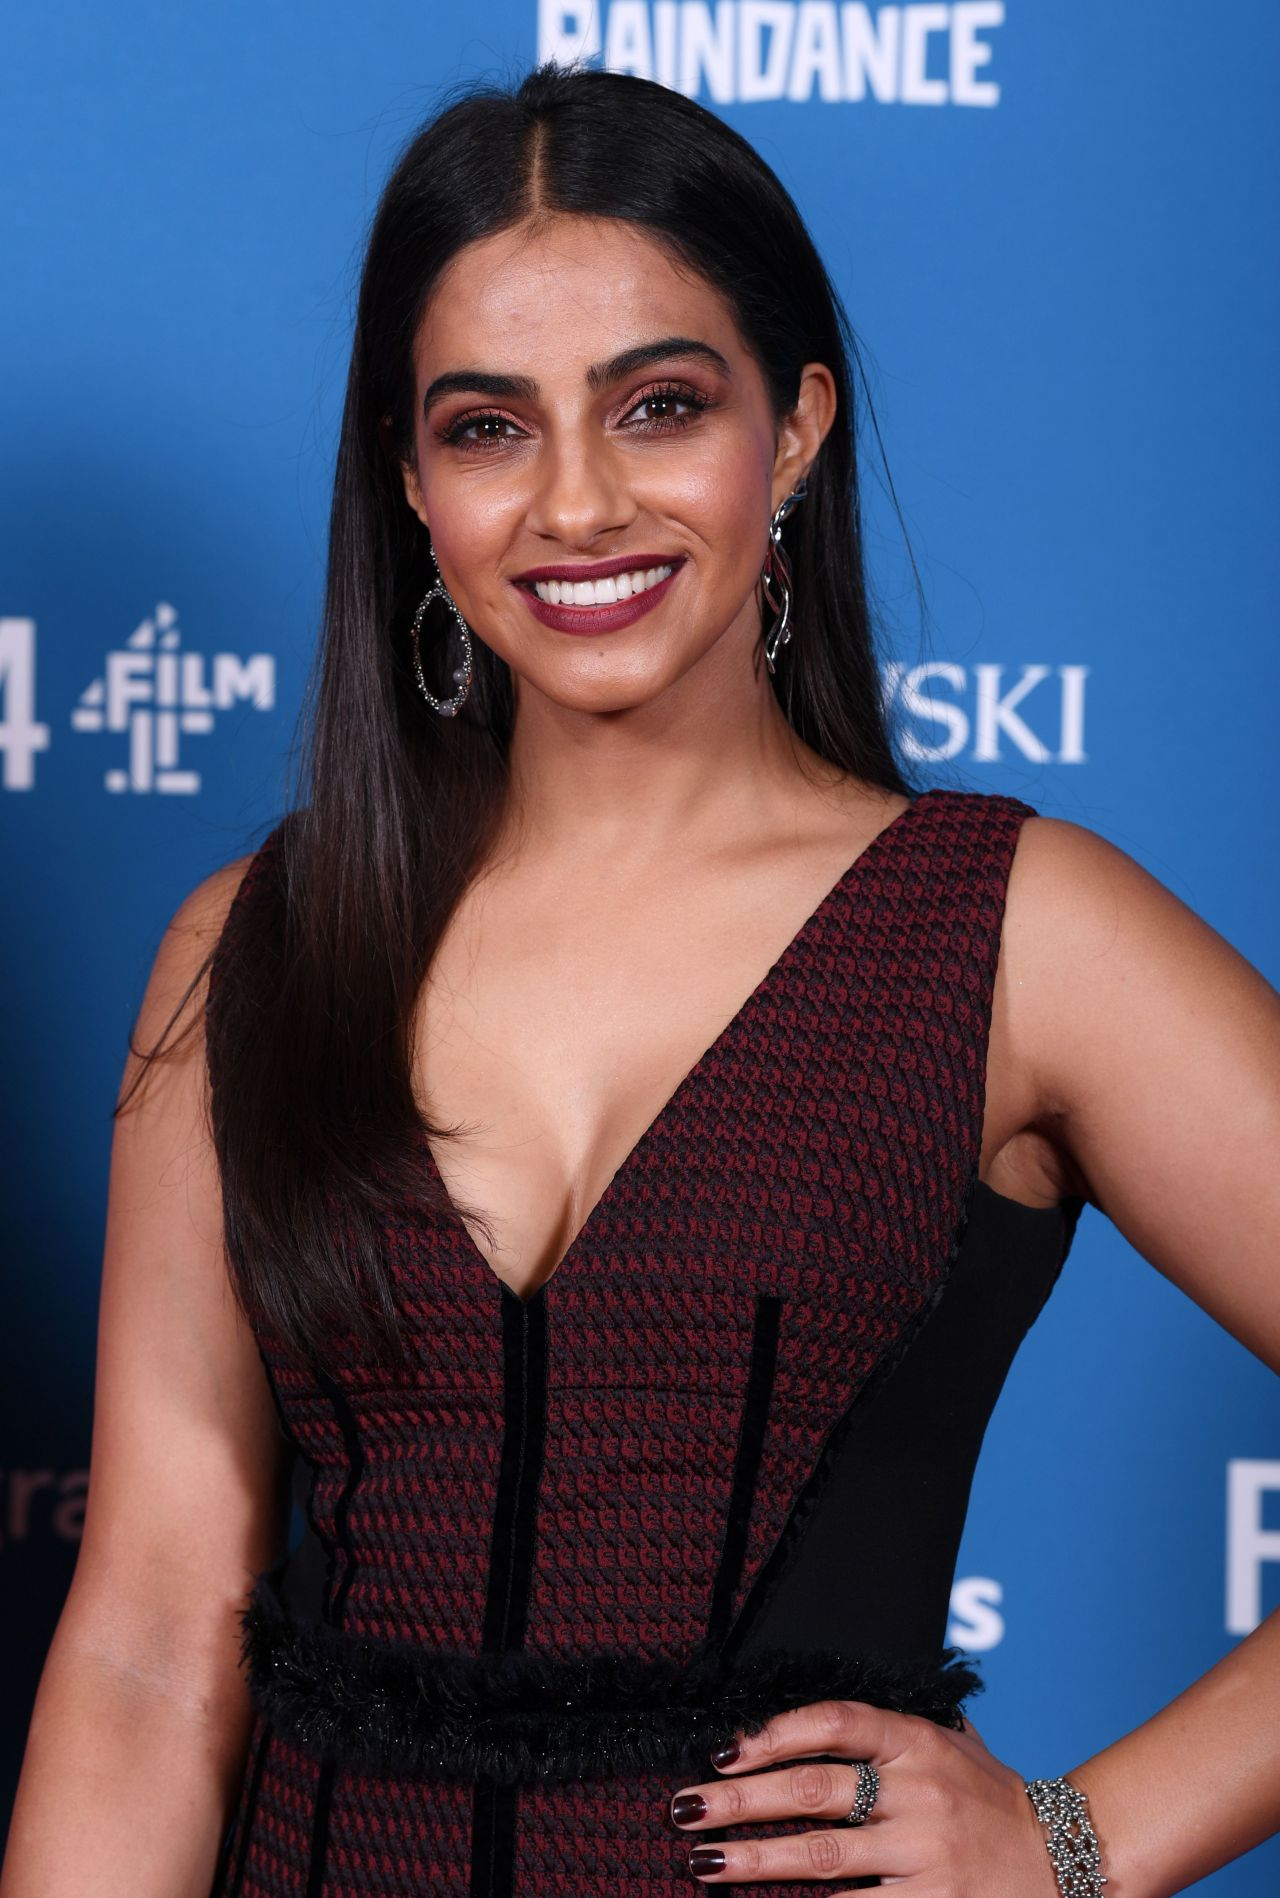 Mandip Gill Nude Photos 21